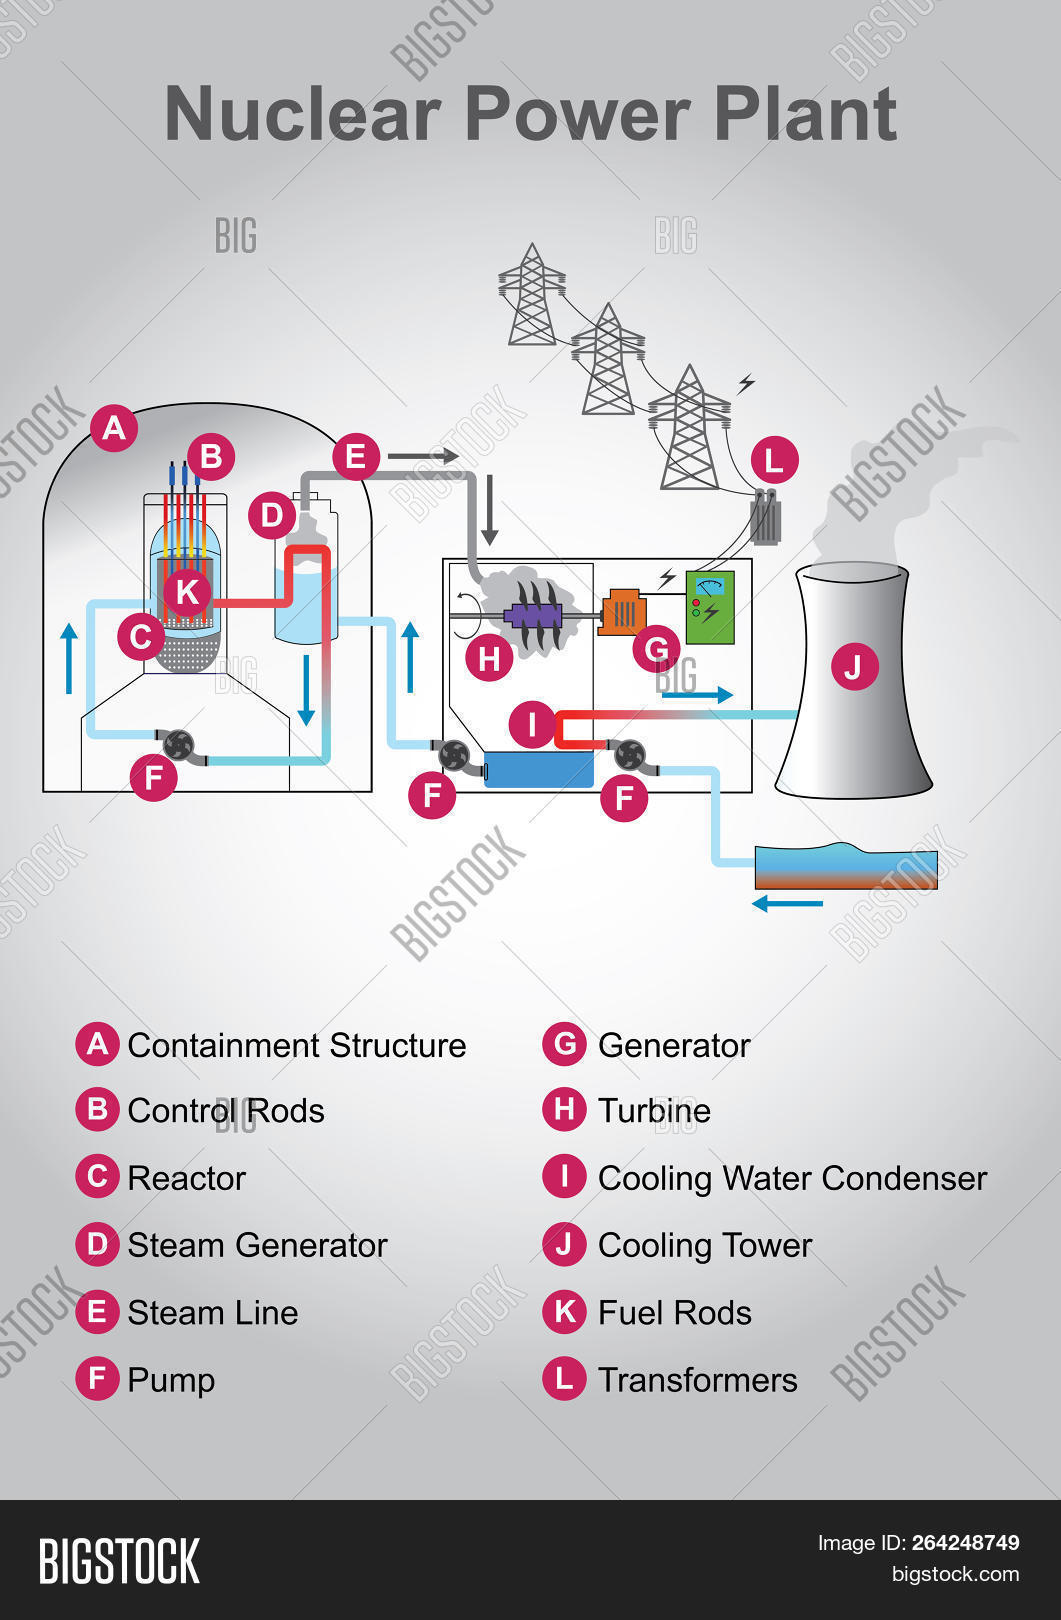 hight resolution of nuclear engineering system nuclear power plant structure